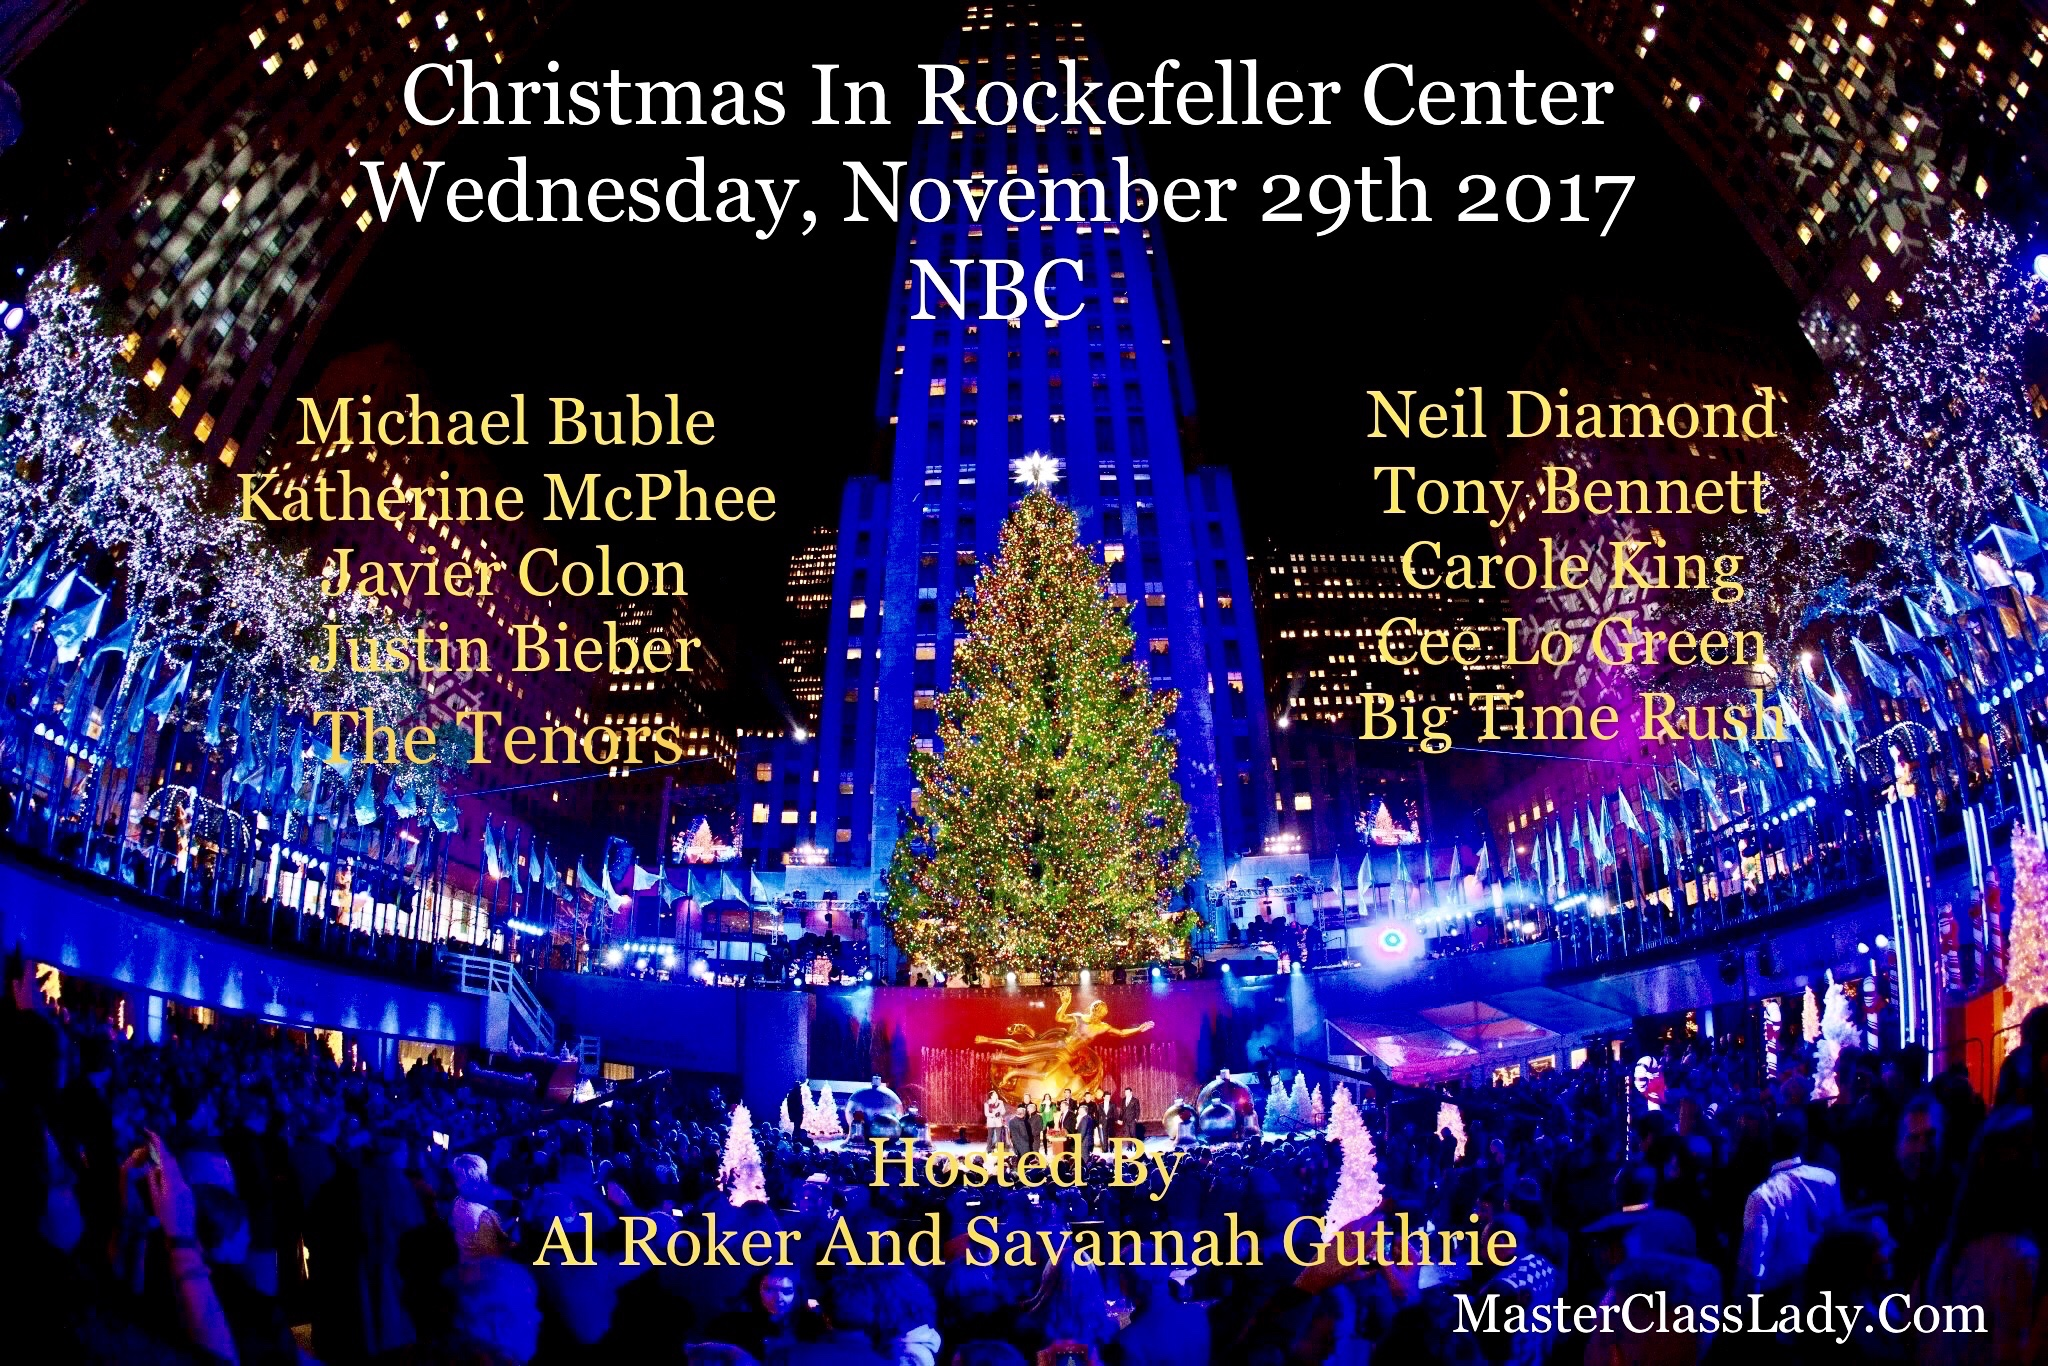 A Star-Studded Christmas In Rockefeller Center Airs On November 29th on NBC